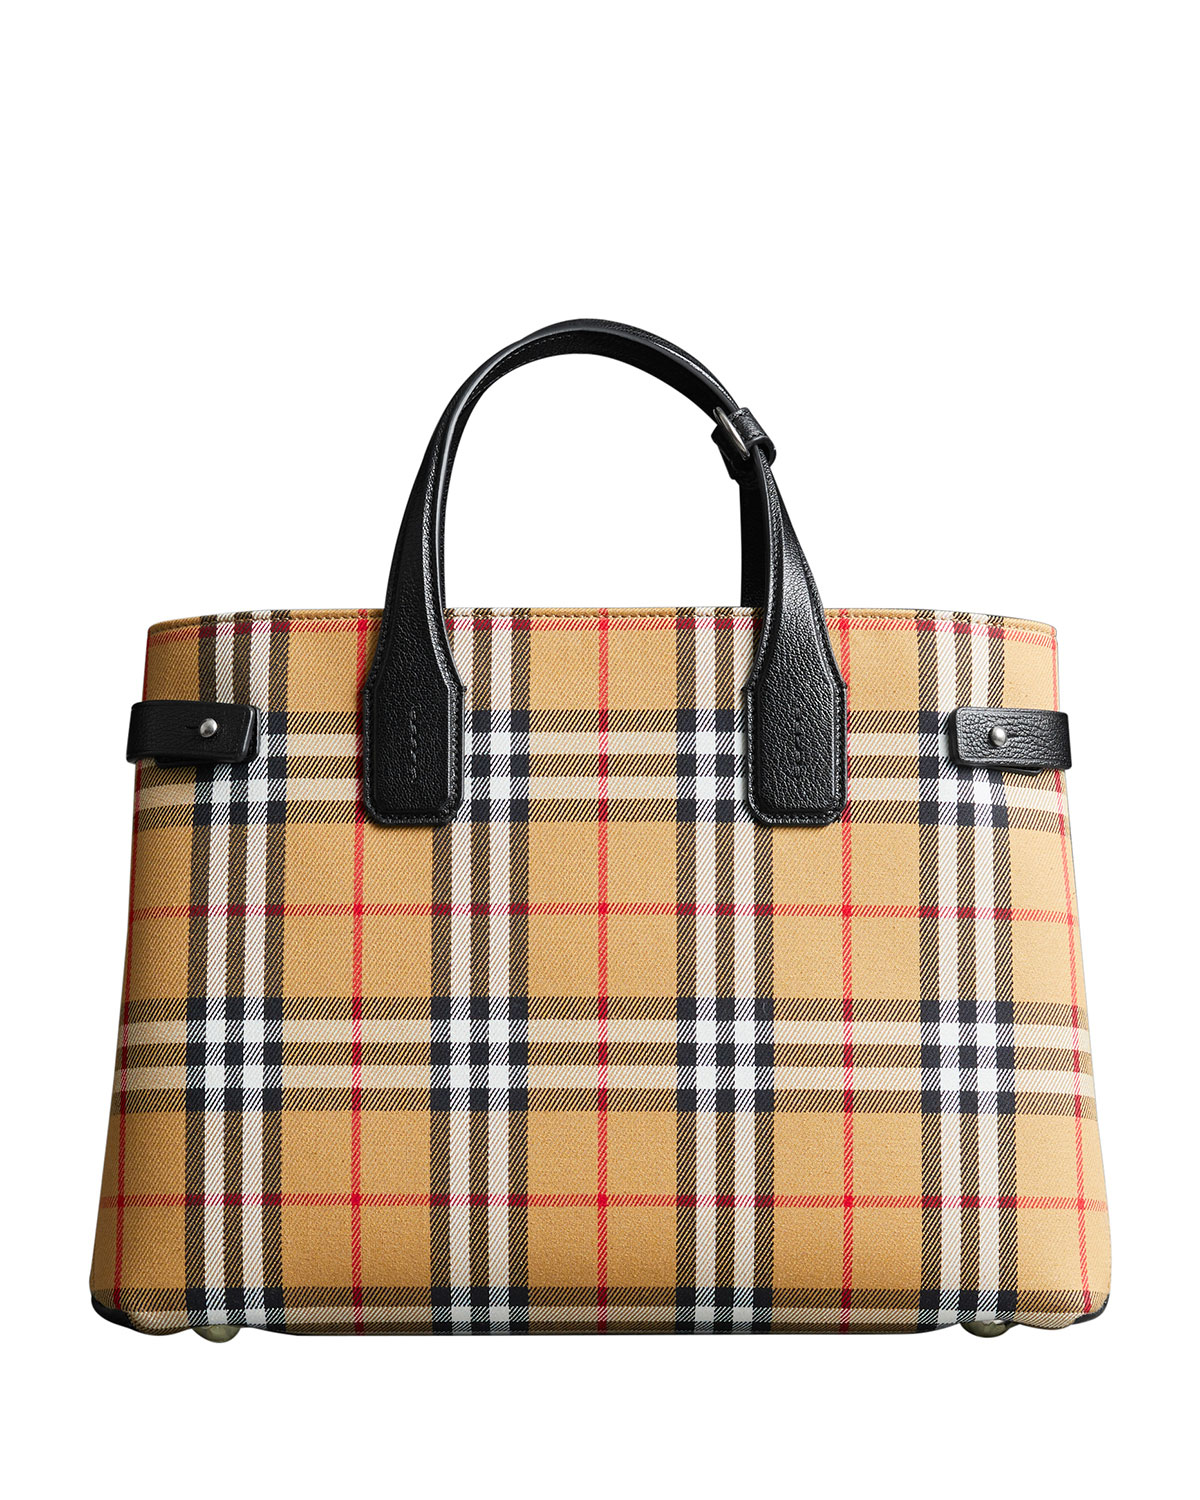 574fa743ffff Burberry Vintage Check Medium Banner Tote Bag